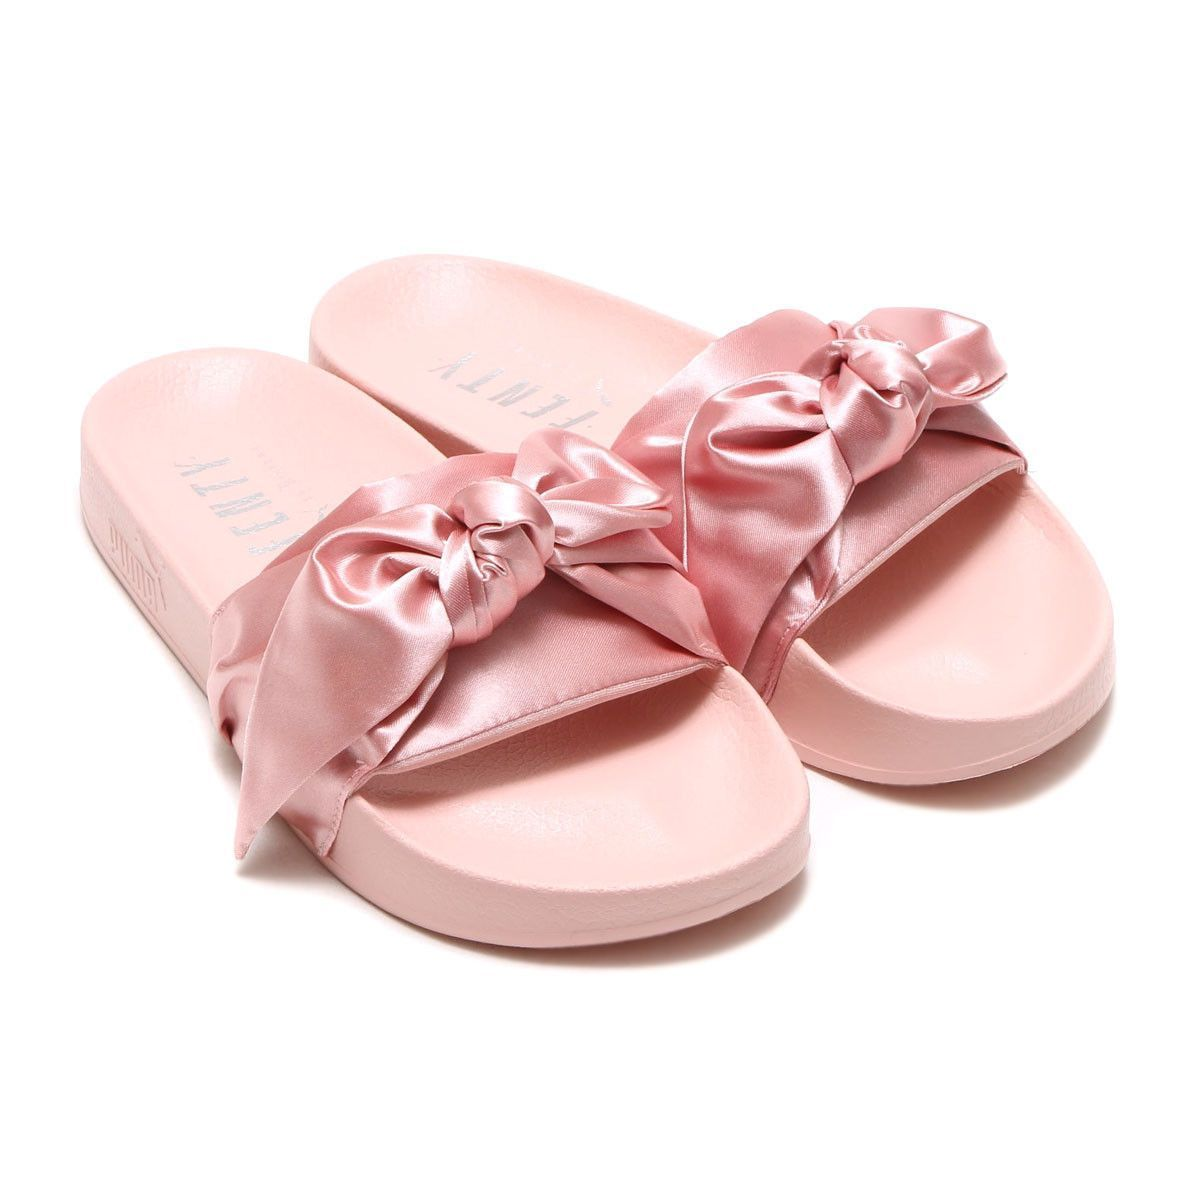 premium selection 2913d 4b77a Puma x Fenty Bow Slide - Silver Pink | Work outfits in 2019 ...